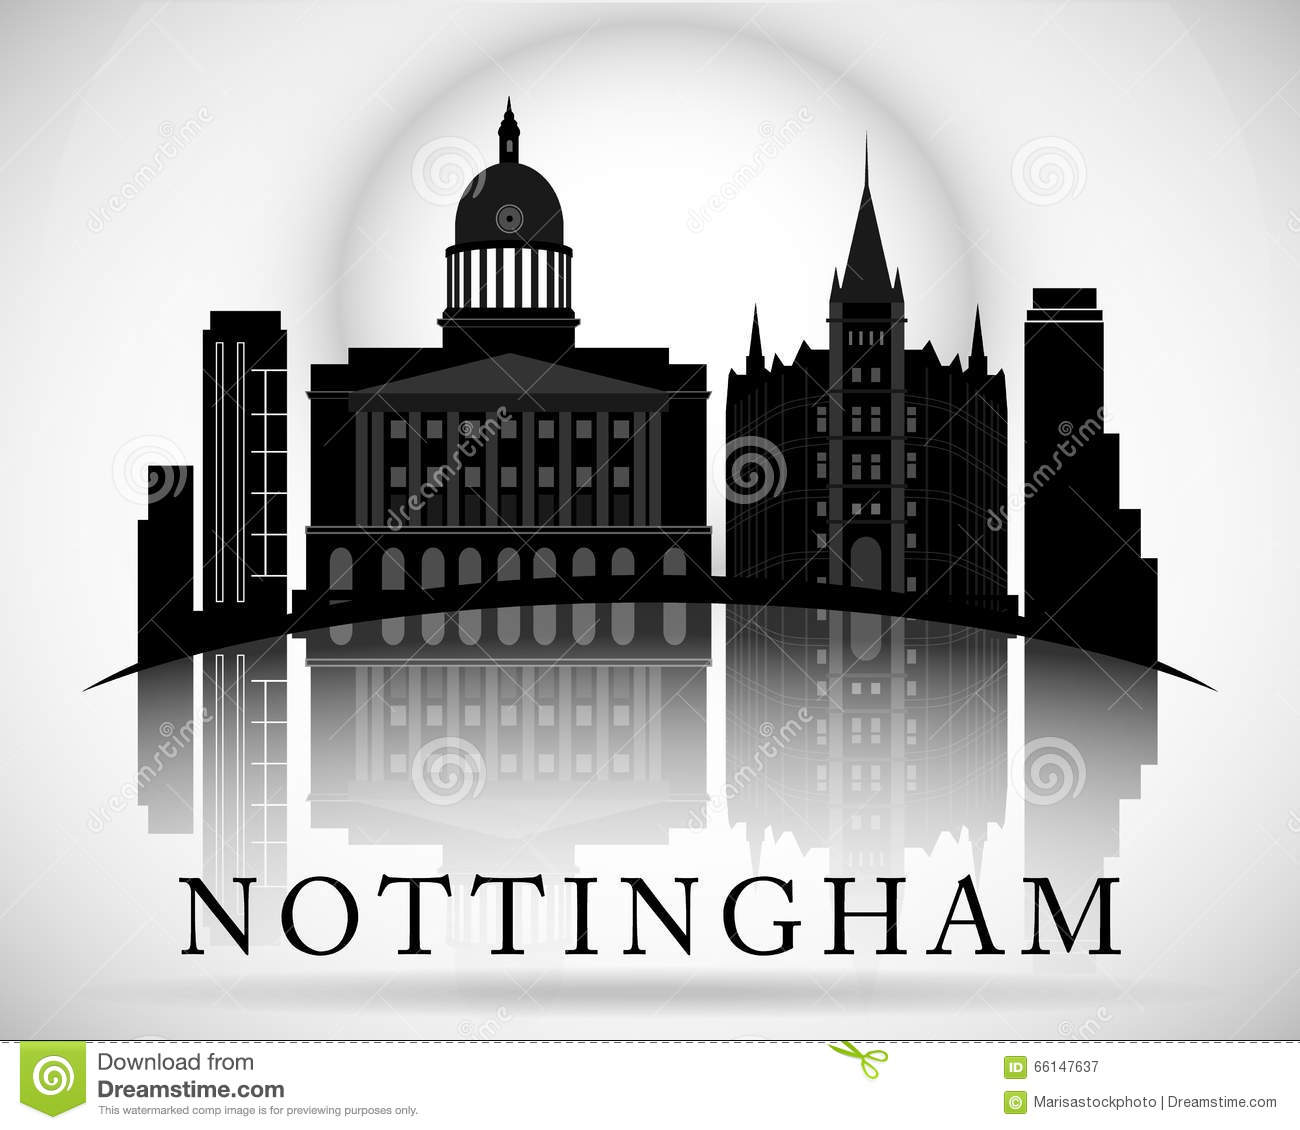 Modern Nottingham City Skyline Design. England Stock Vector.